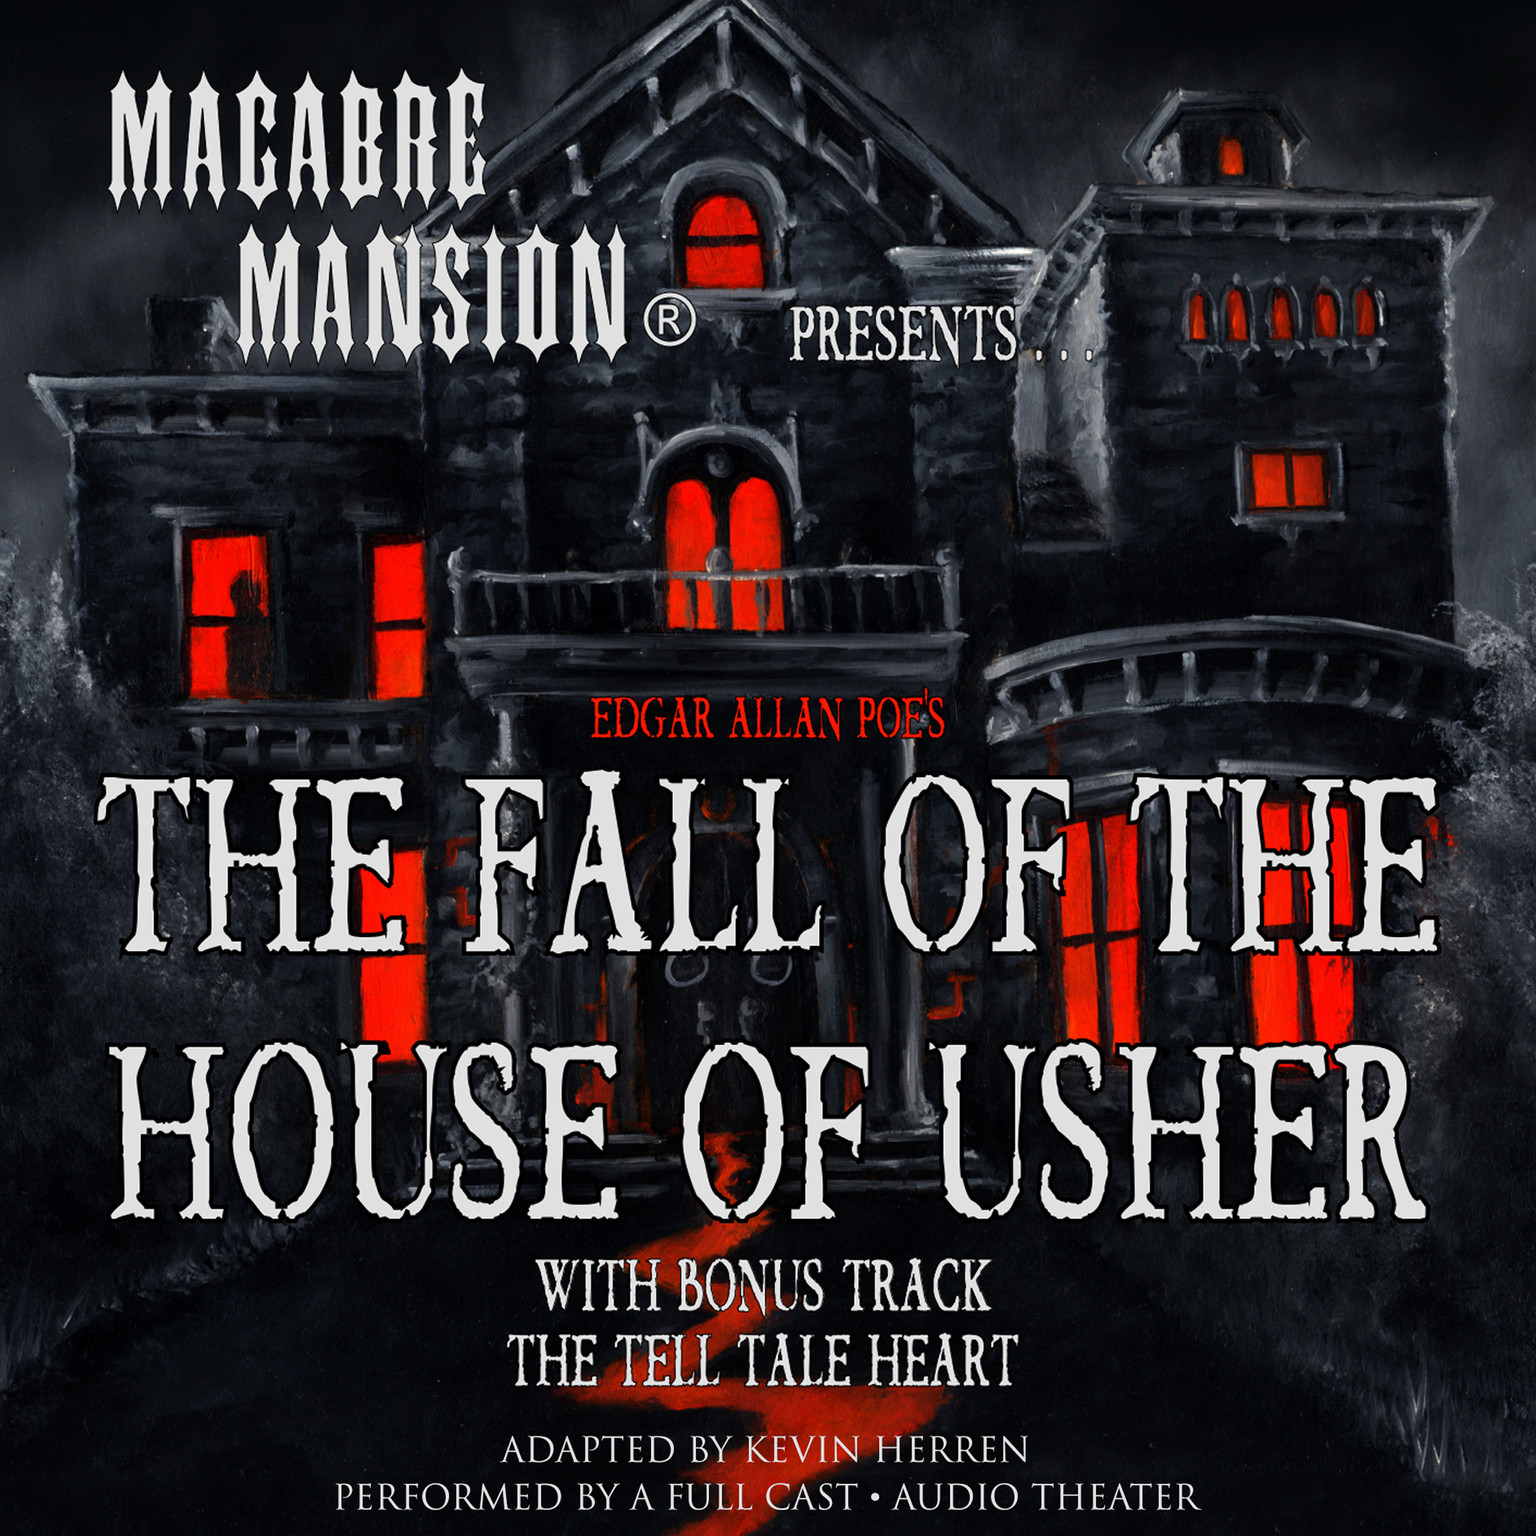 Macabre Mansion Presents The Fall Of The House Of Usher